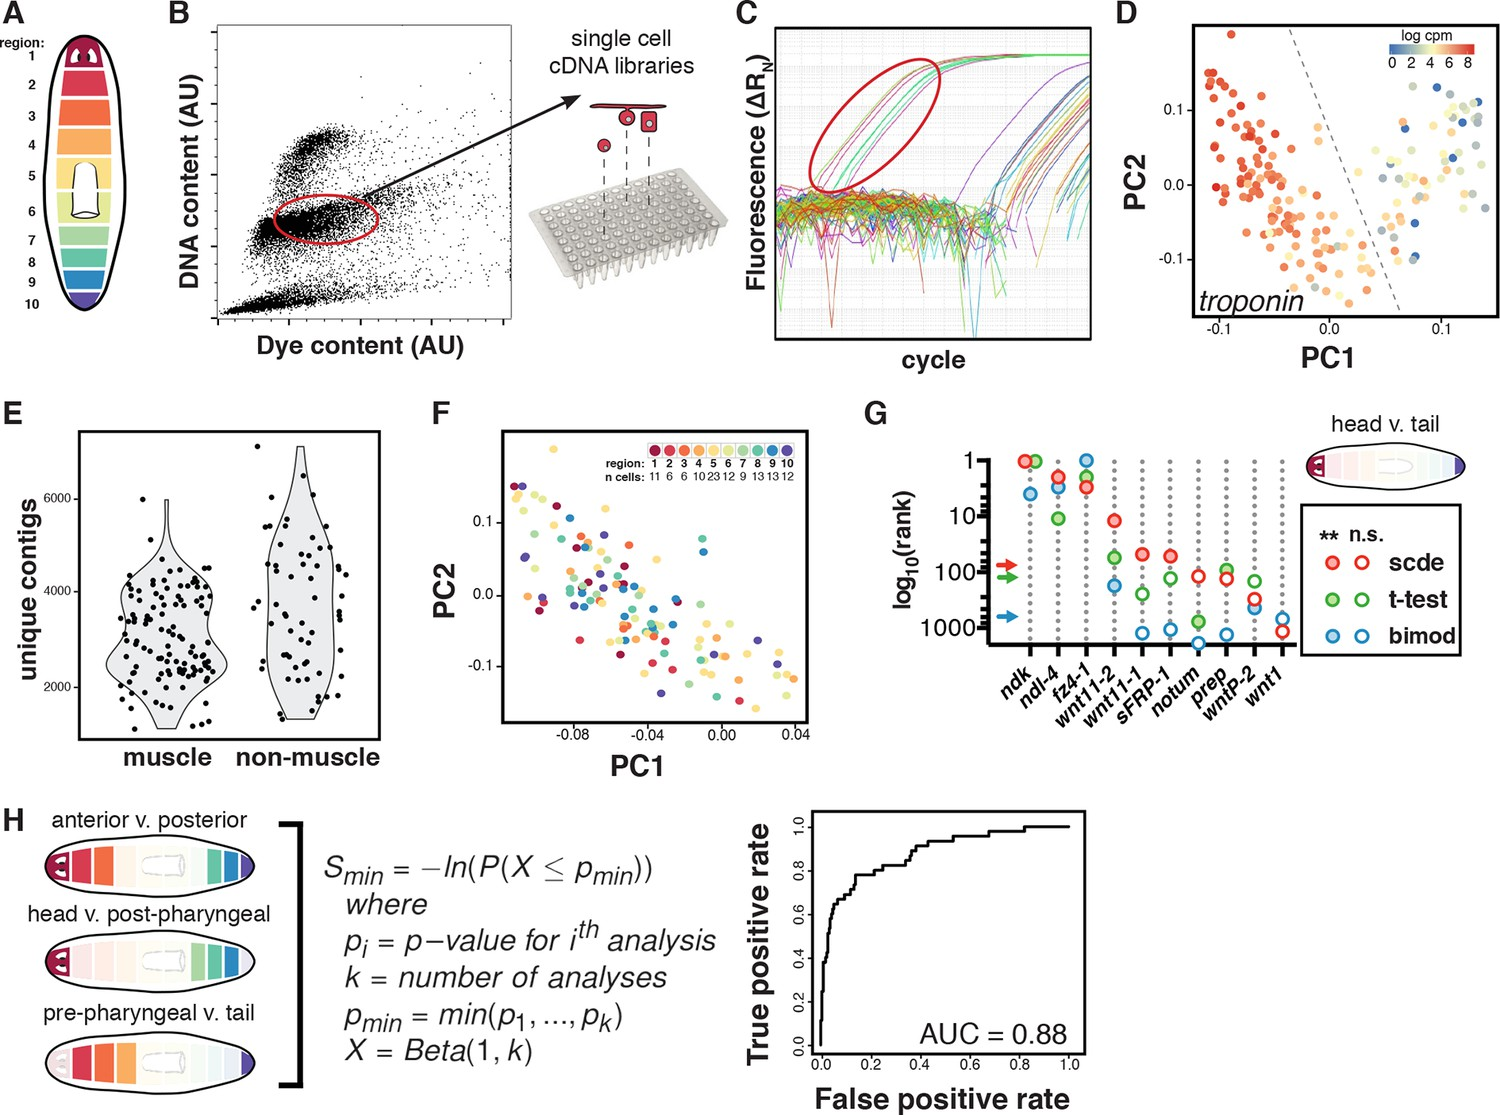 Two Fgfrl Wnt Circuits Organize The Planarian Anteroposterior Axis Cool Puts Your Brain Muscle To Test Single Cell Sequencing And Analysis